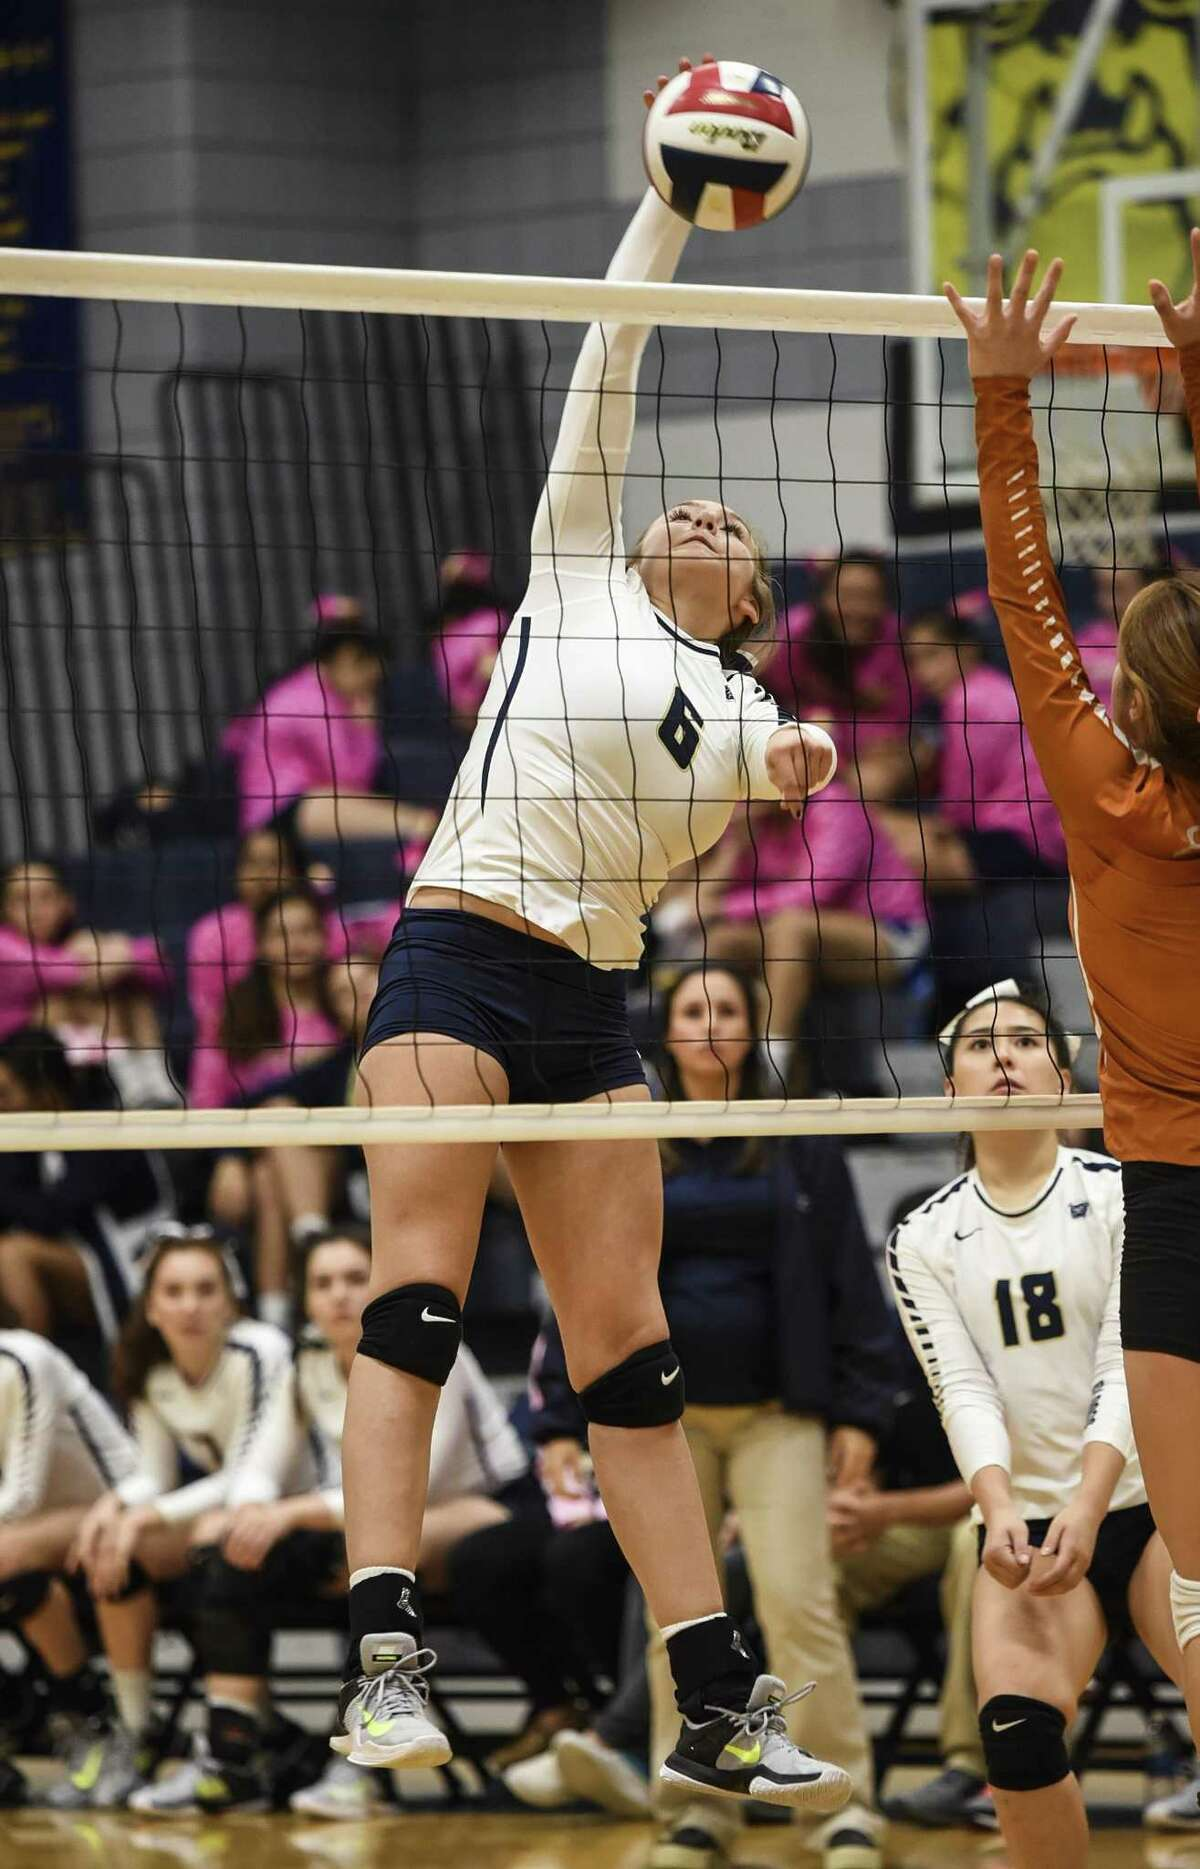 Arin Vallone and Alexander improved to 8-0 in District 29-6A Tuesday with a 3-0 (25-14, 25-20, 25-13) win over Eagle Pass.